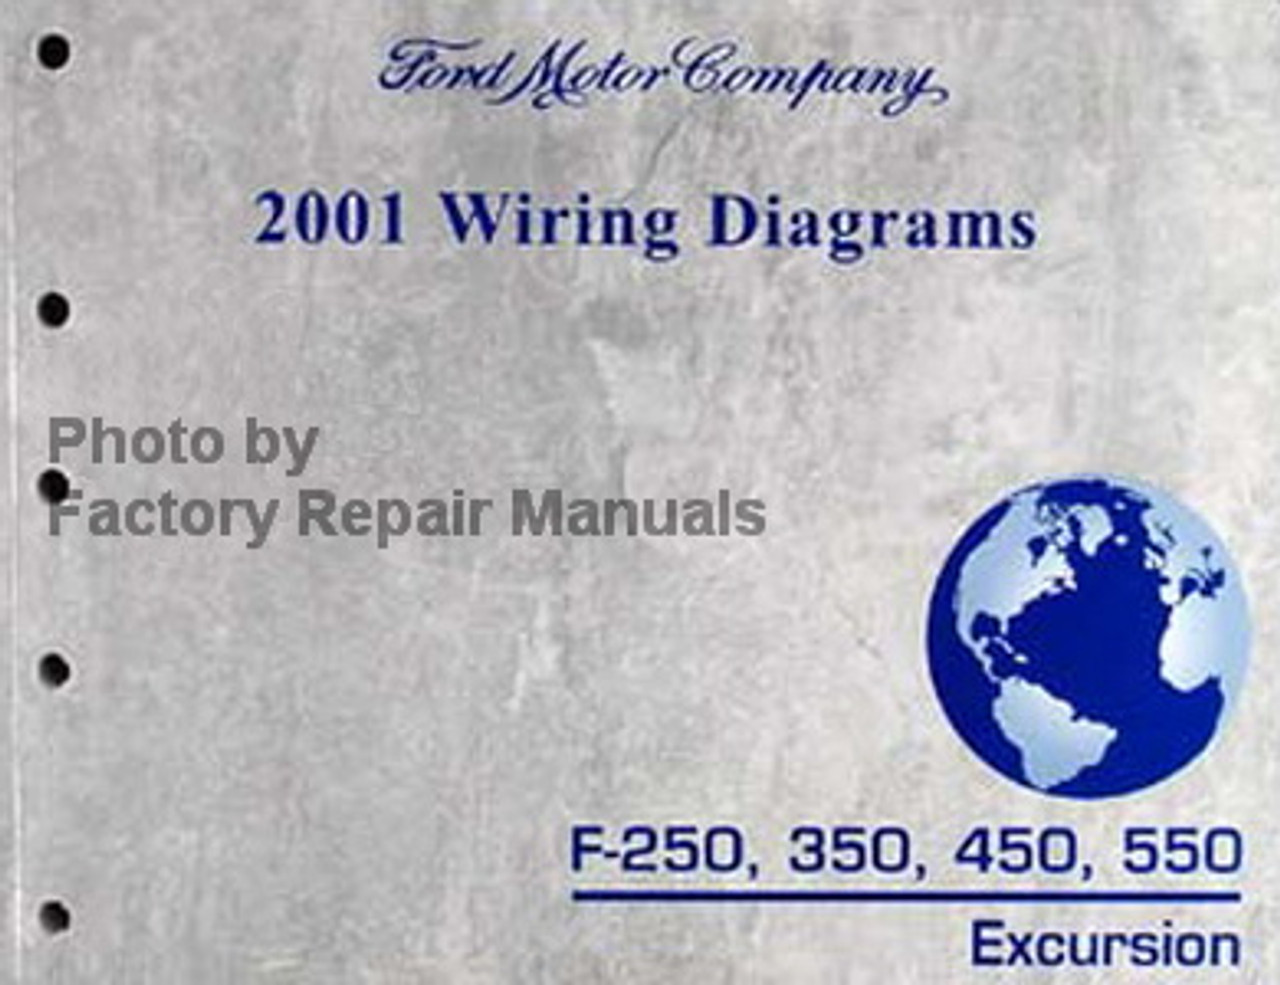 2001 Ford F250 F350 F450 F550 Super Duty Truck, Excursion Wiring Diagrams  New - Factory Repair Manuals | Ford F250 Wiring Diagram |  | Factory Repair Manuals